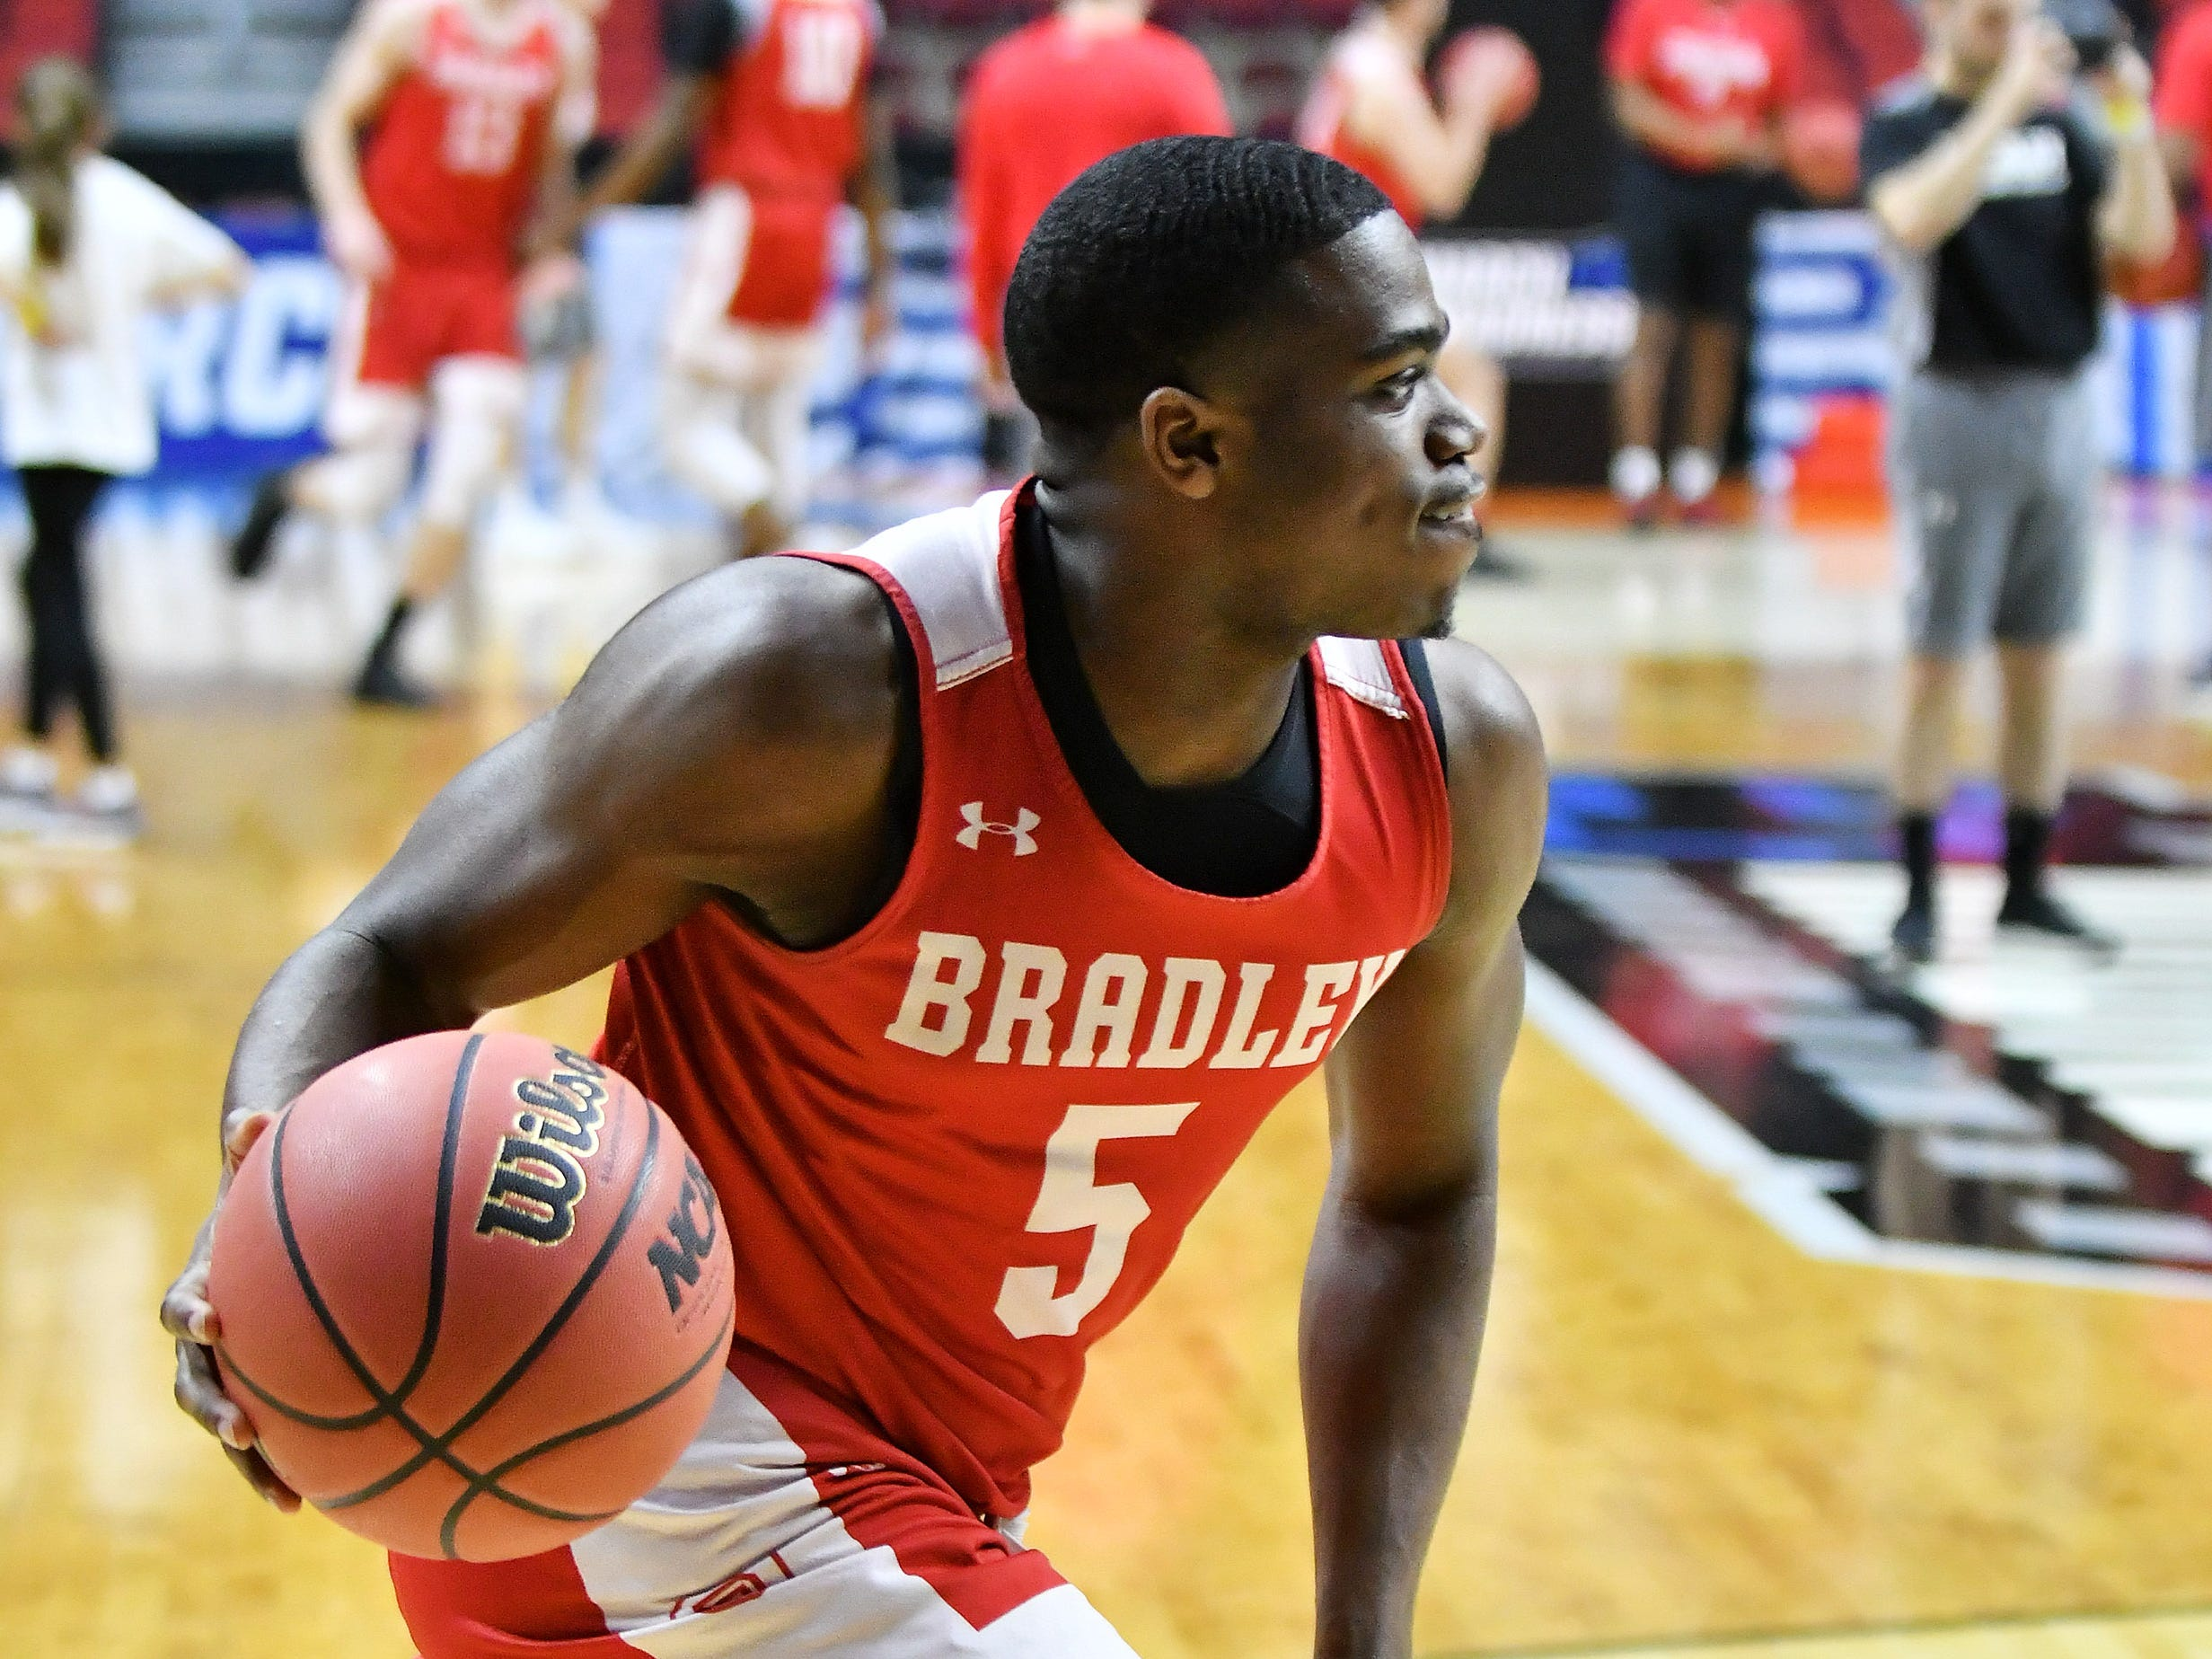 Bradley guard Darrell Brown runs a drill at practice.